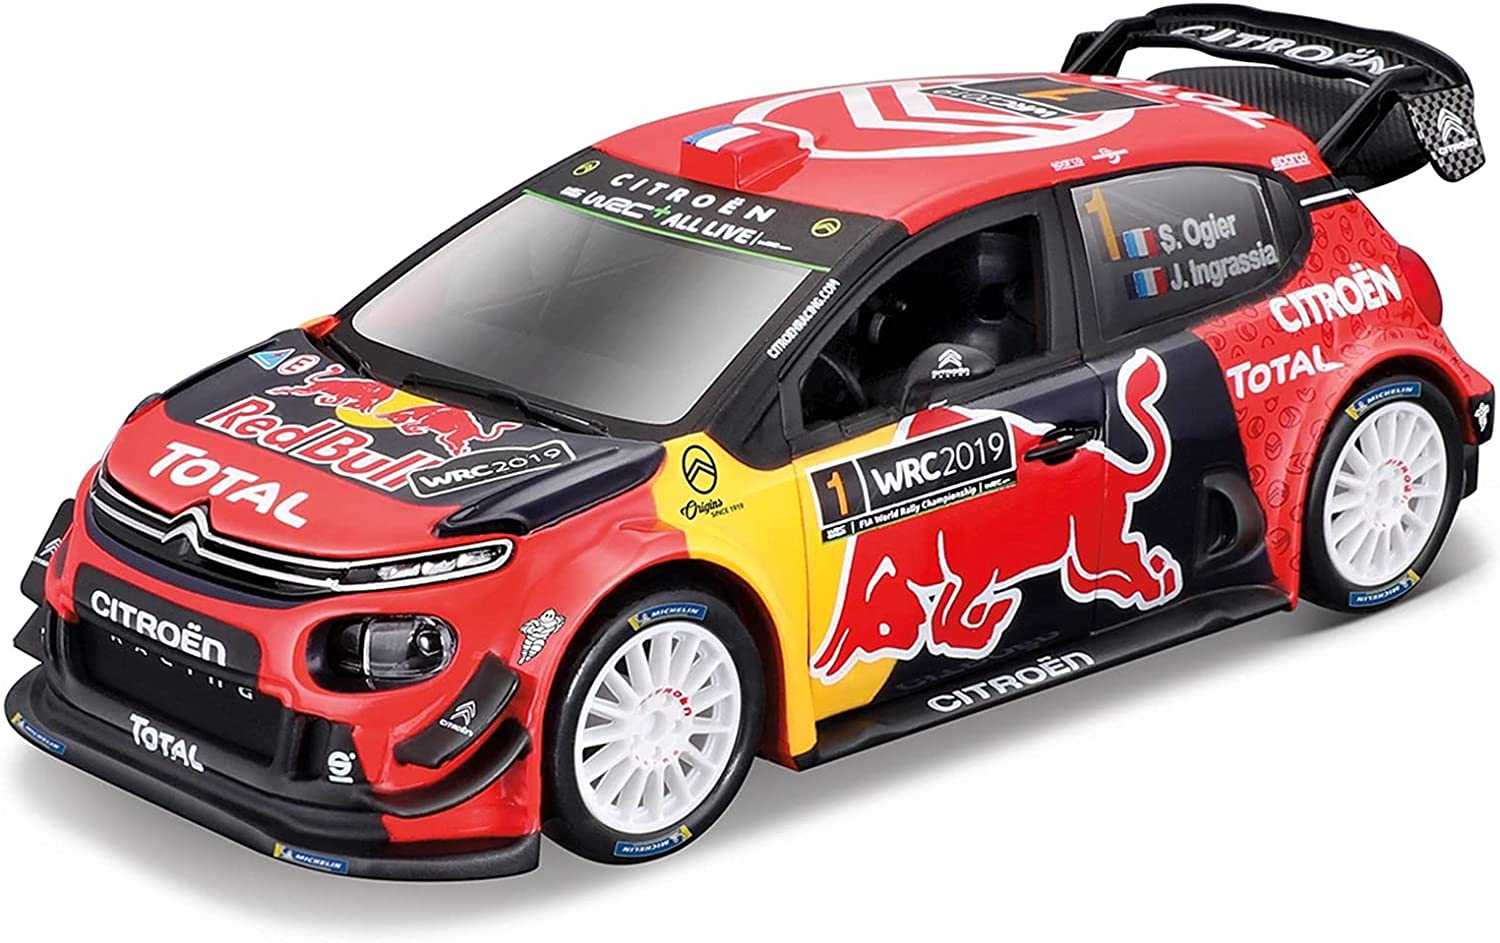 Car Toy Collectibles for Citroen C3 2019 Monte WRC St Animer and price revision Carlo 1:32 Trust